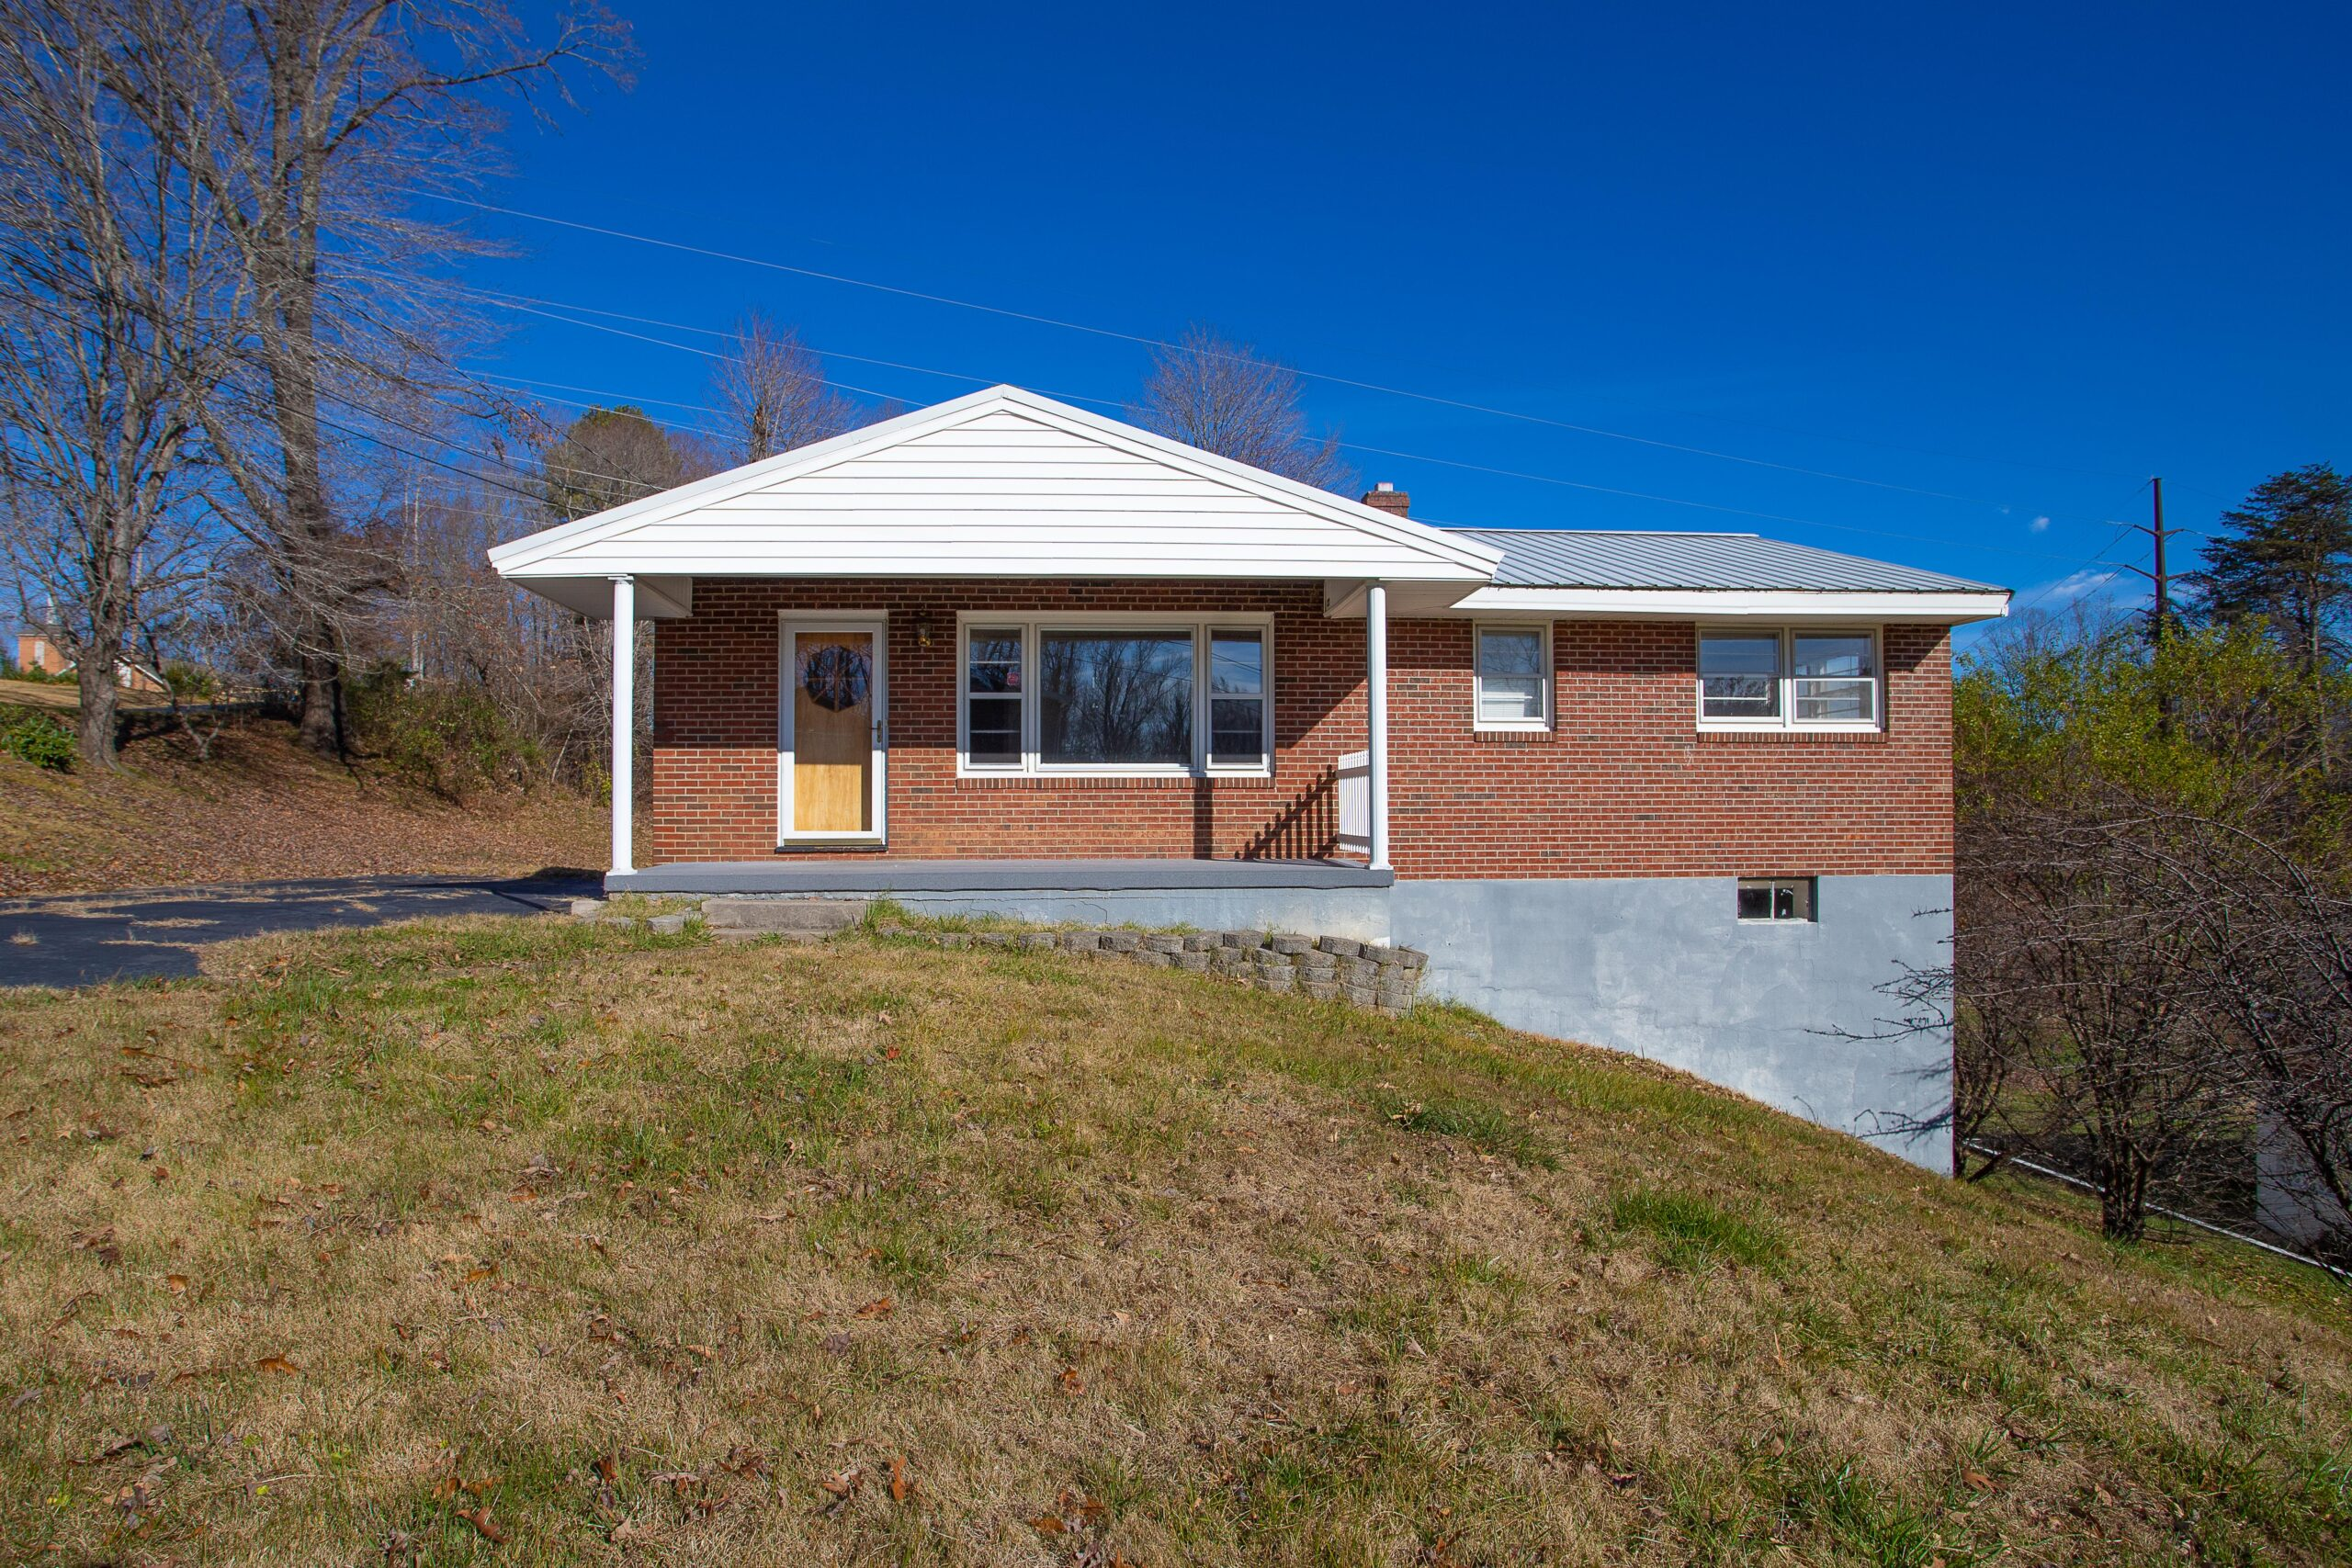 Home for Sale in Martinsville, 170 Forest Lane